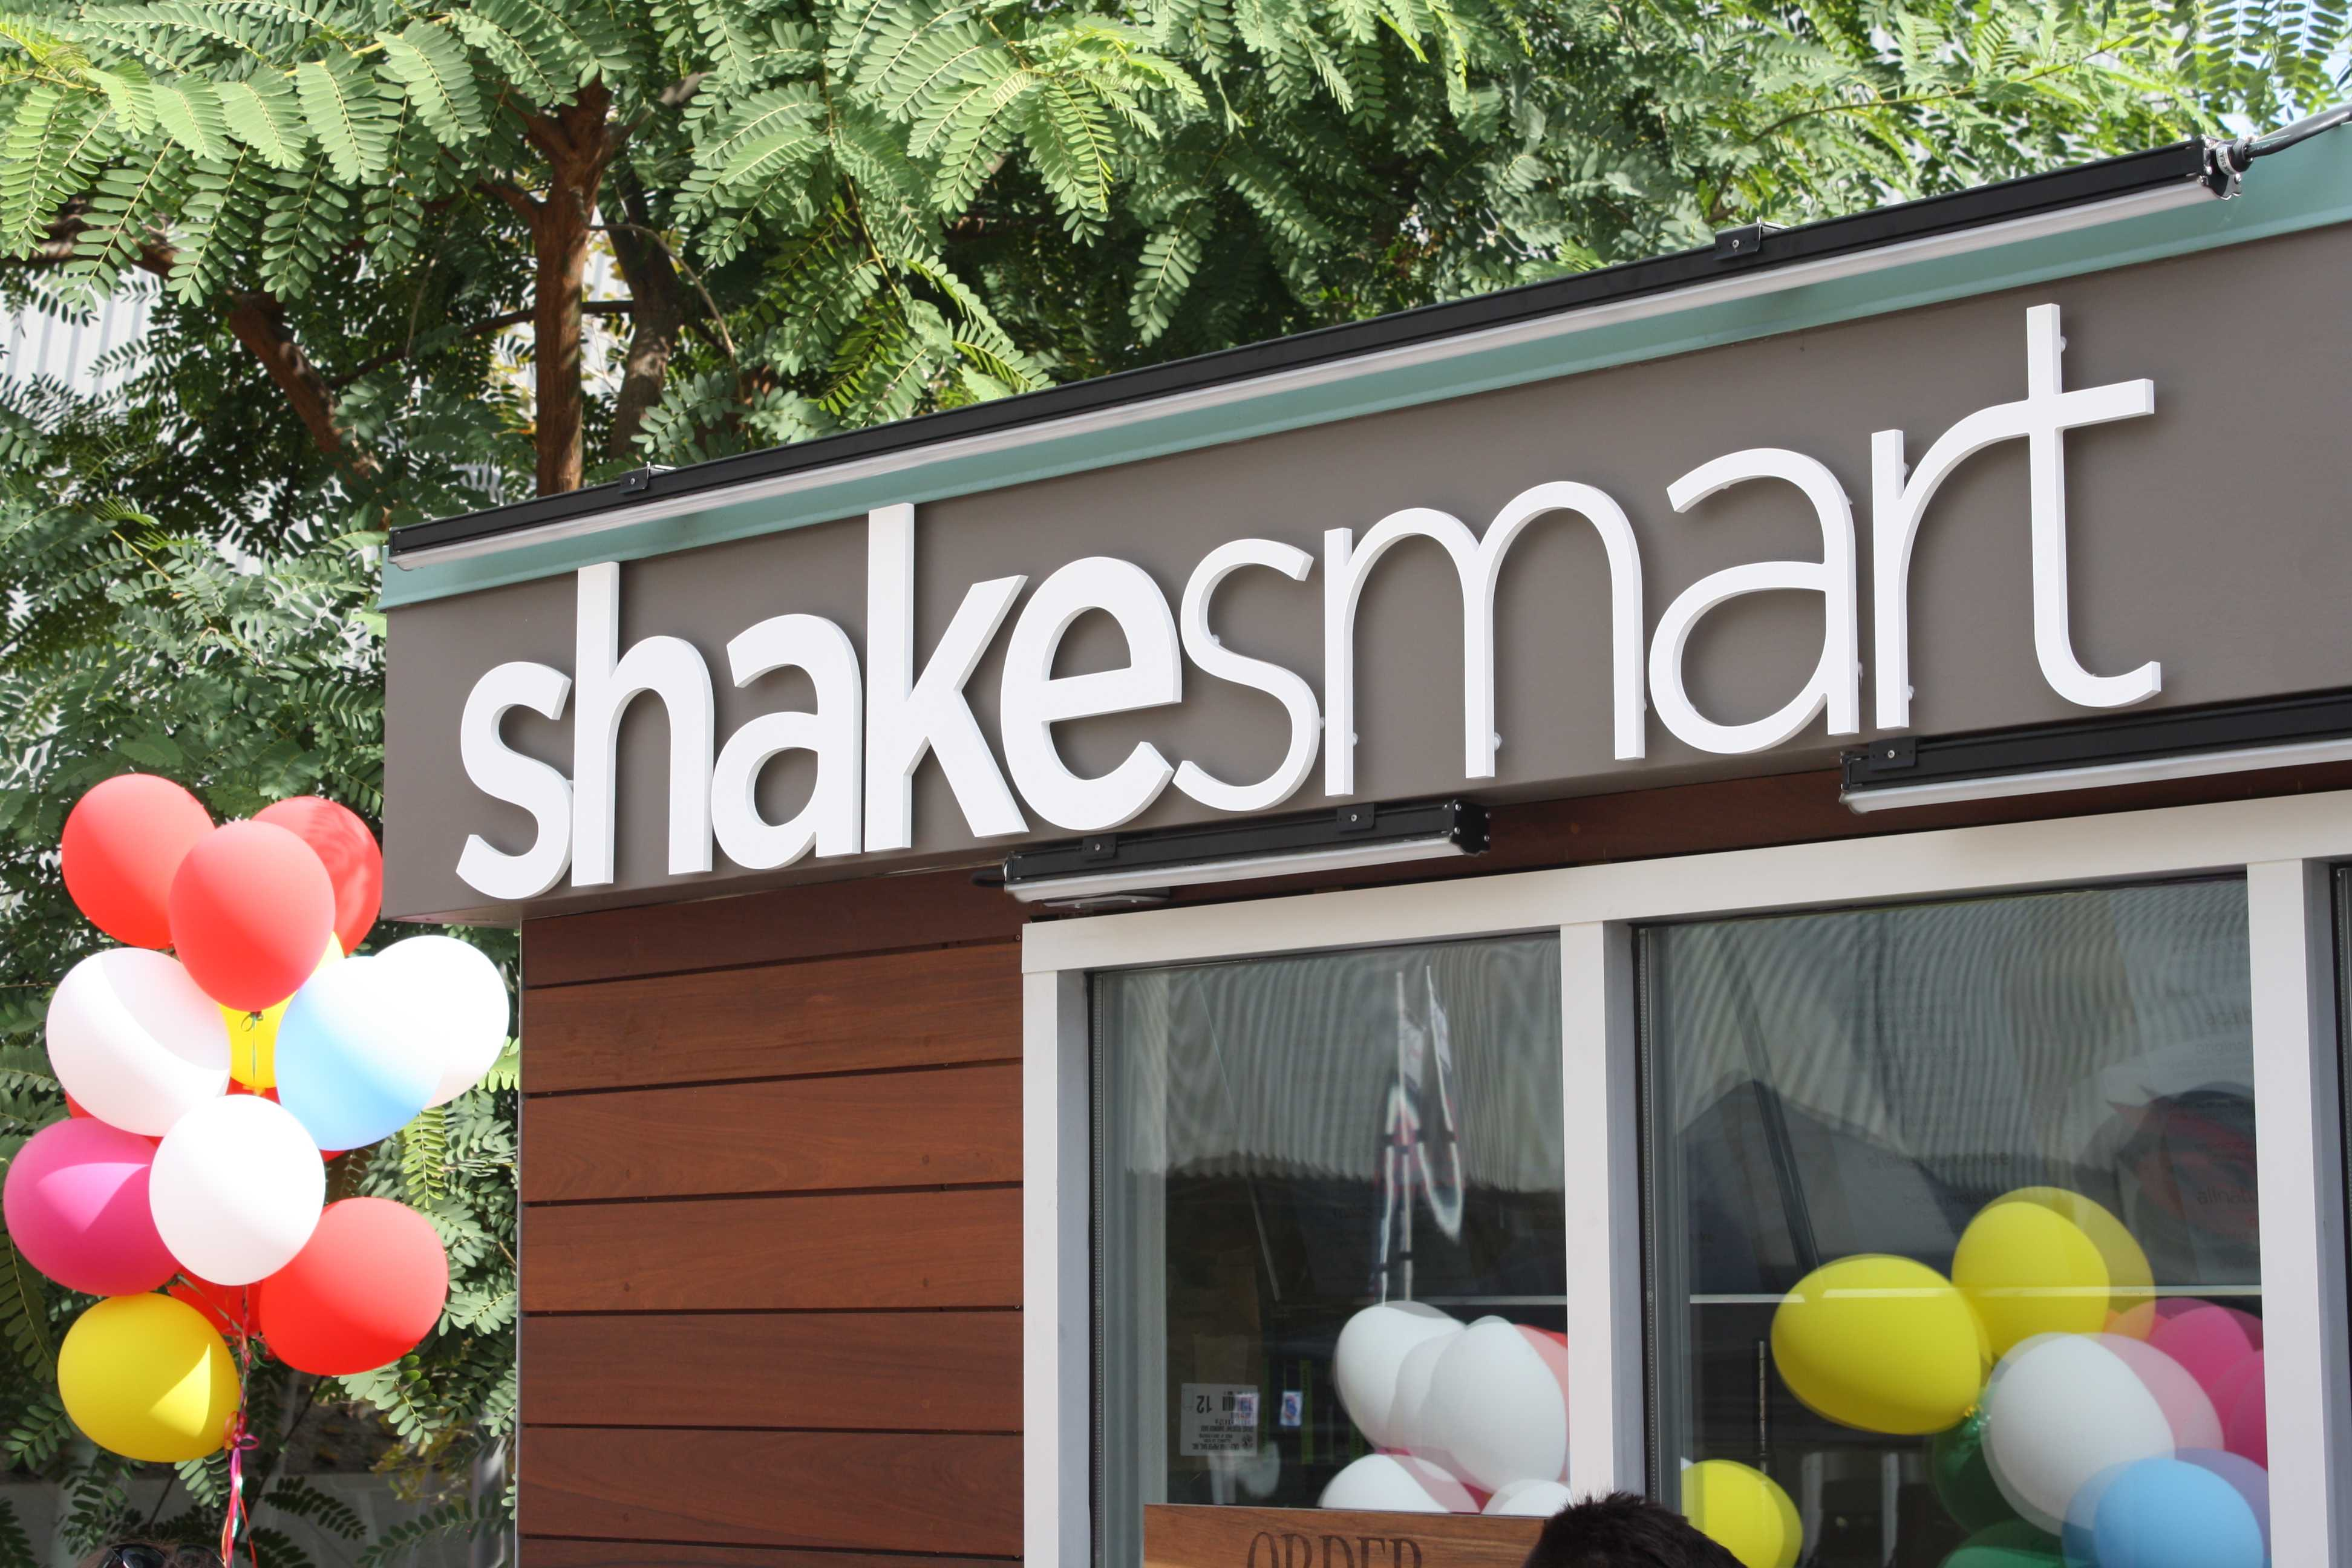 Shake+Smart+located+outside+next+to+the+SRC+on+Free+Shake+Day%2C+Sept.+1%2C+2015.+Photo+credit%3A+Lauren+Gates